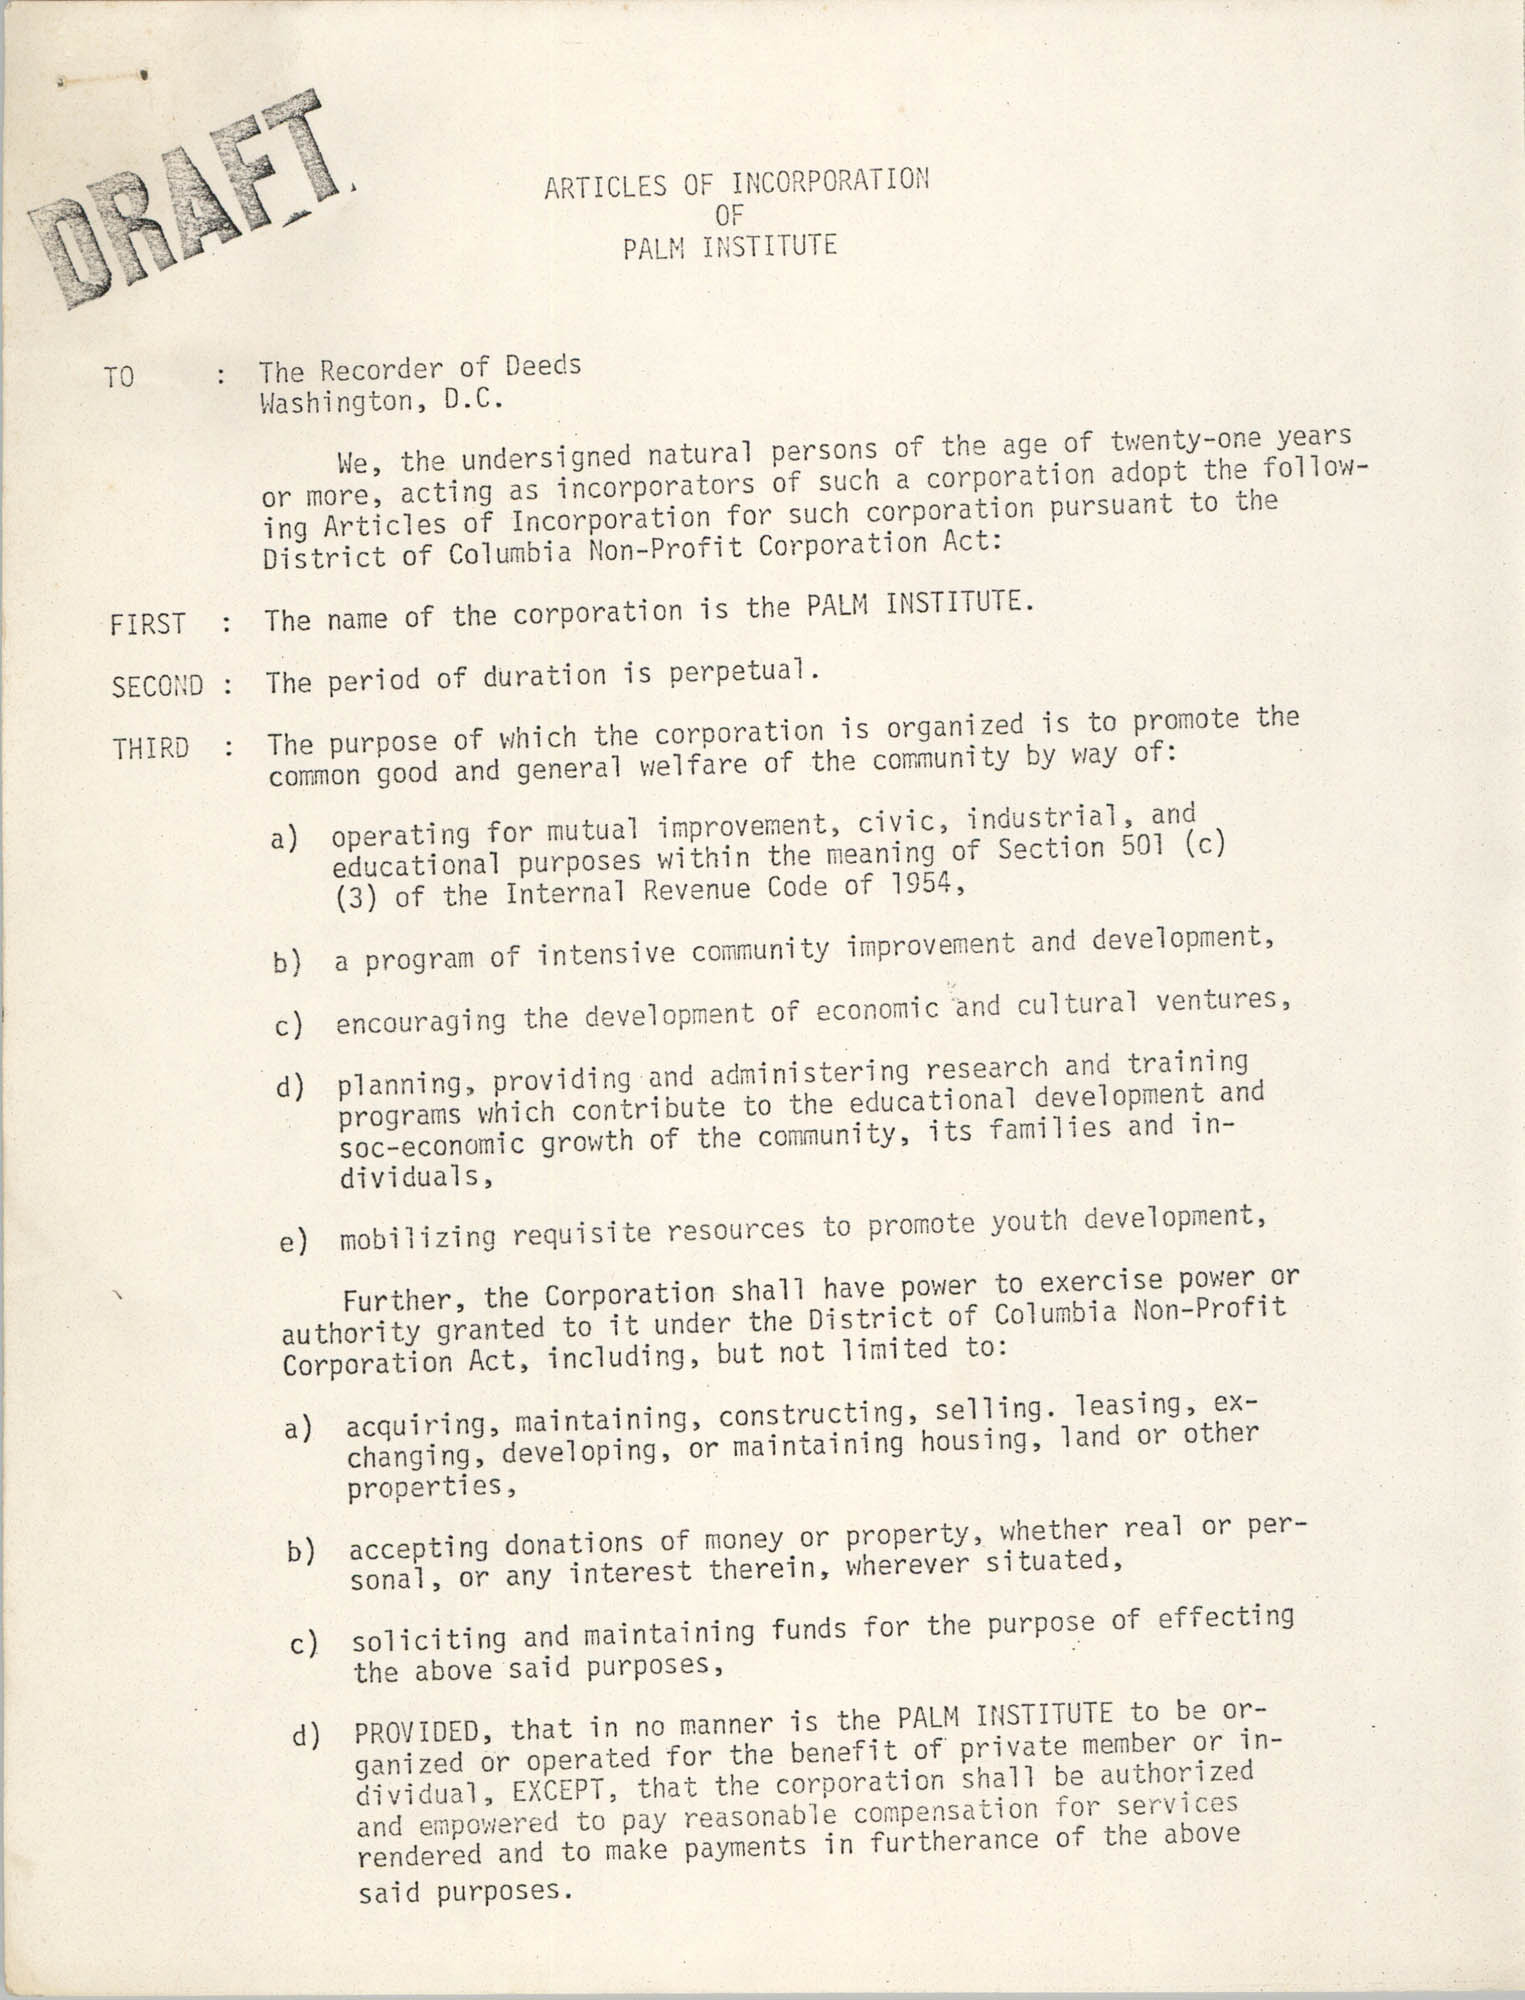 Articles of Incorporation of Palm Institute